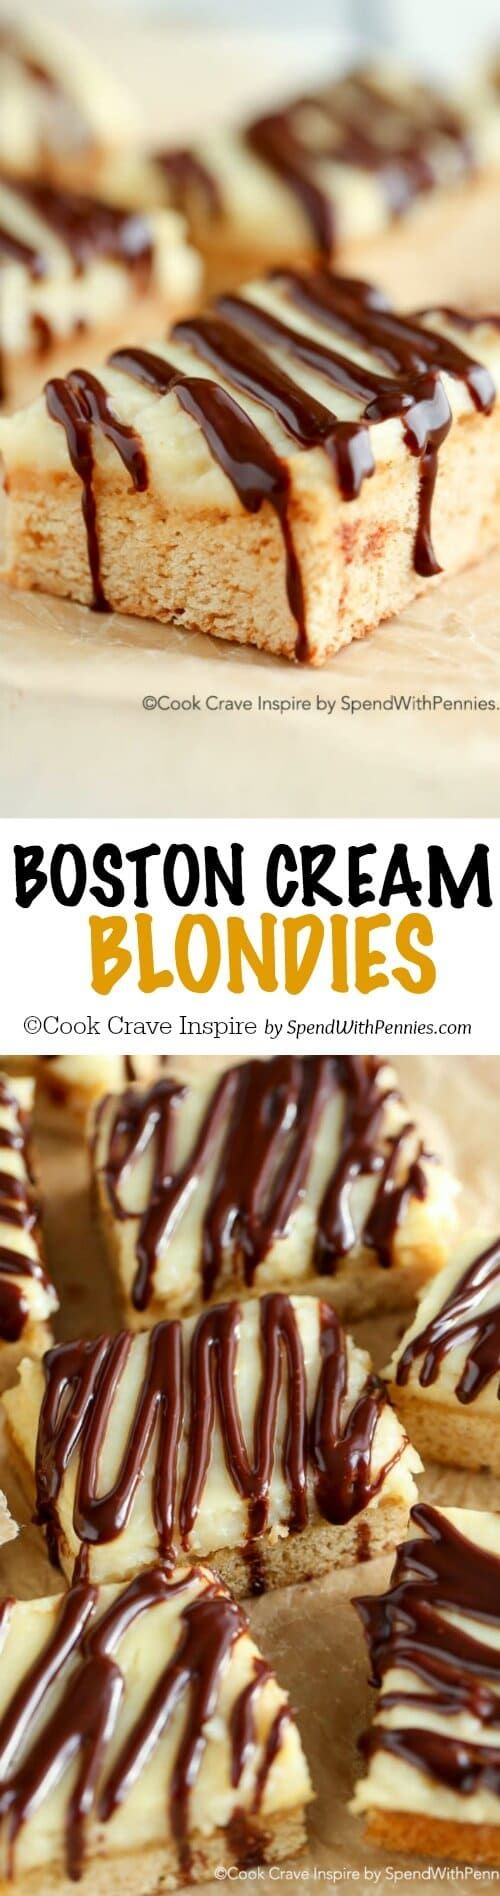 Boston Cream Blondies! An amazing Brownie-like base topped with homemade custard and a rich chocolate ganache! You can't eat just one!